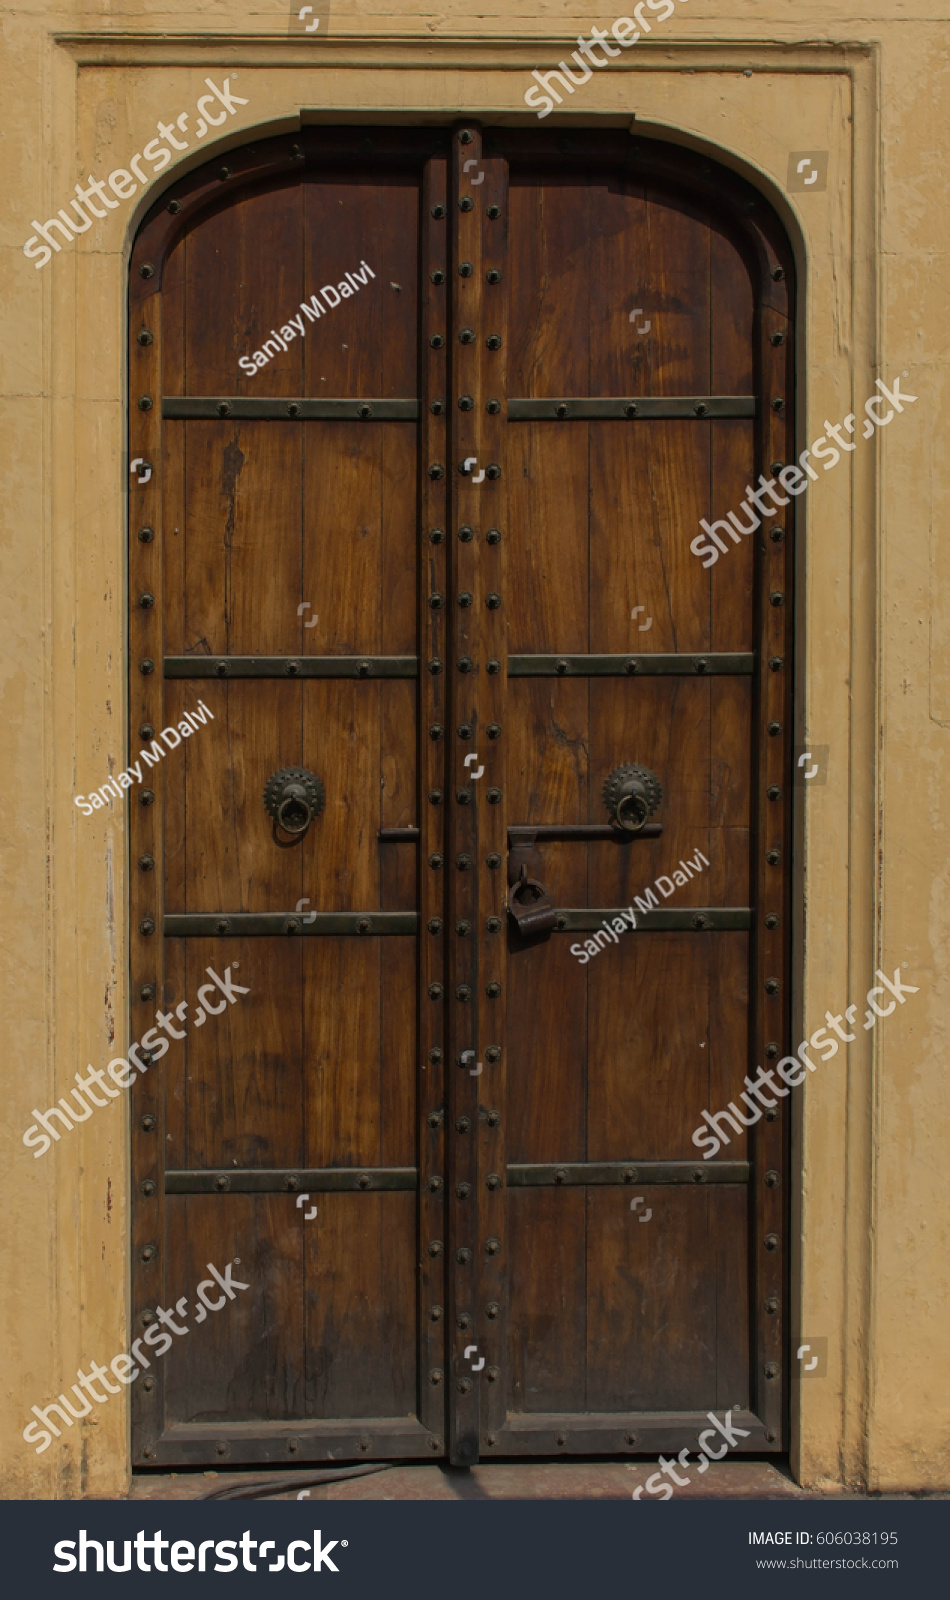 Antique wooden door frame from Jaipur City - Antique Wooden Door Frame Jaipur City Stock Photo (Edit Now